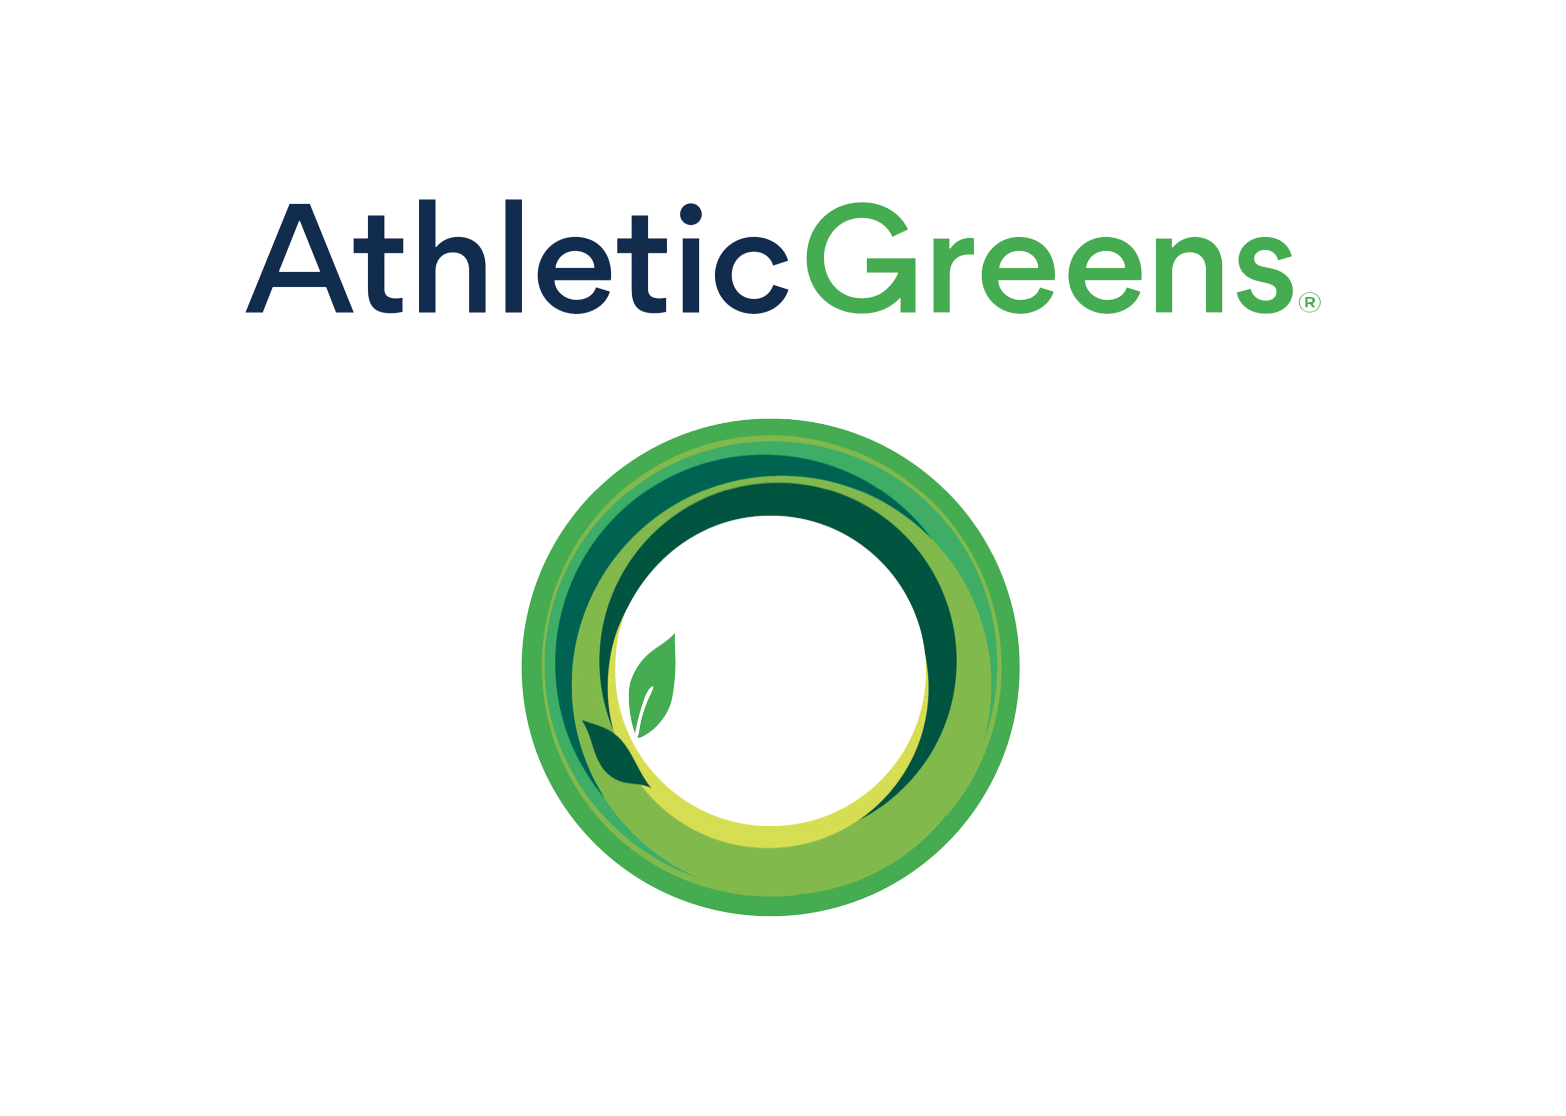 athleticgreensweb.png